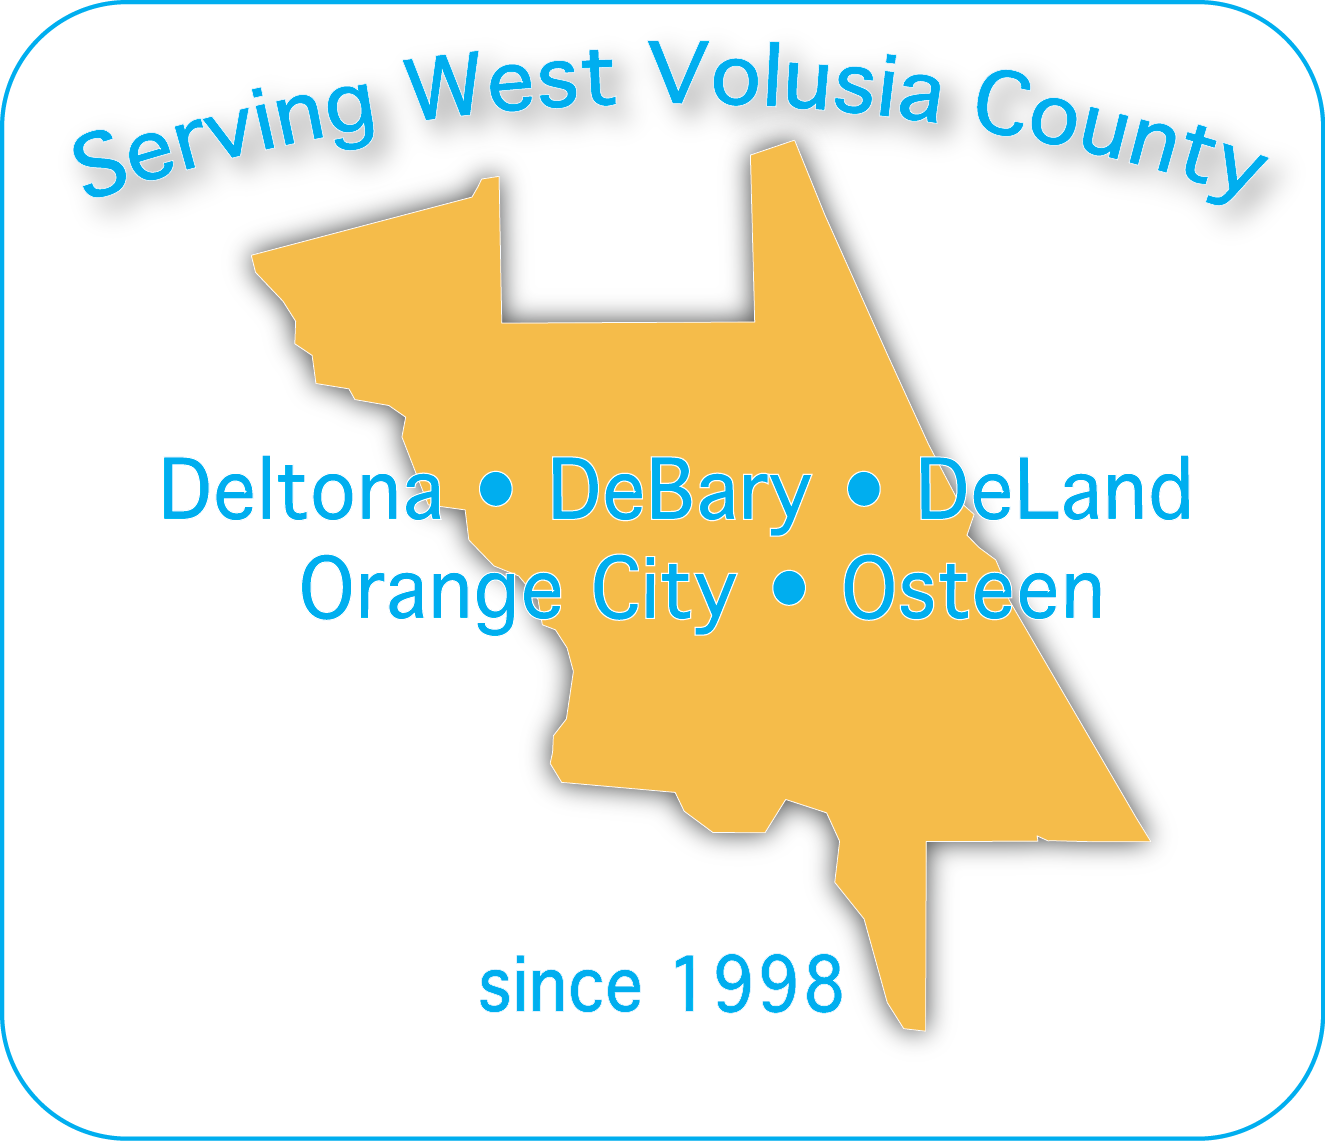 Swim with Becky serves West Volusia communities including Deltona, DeBary, DeLand, Orange City, Osteen.